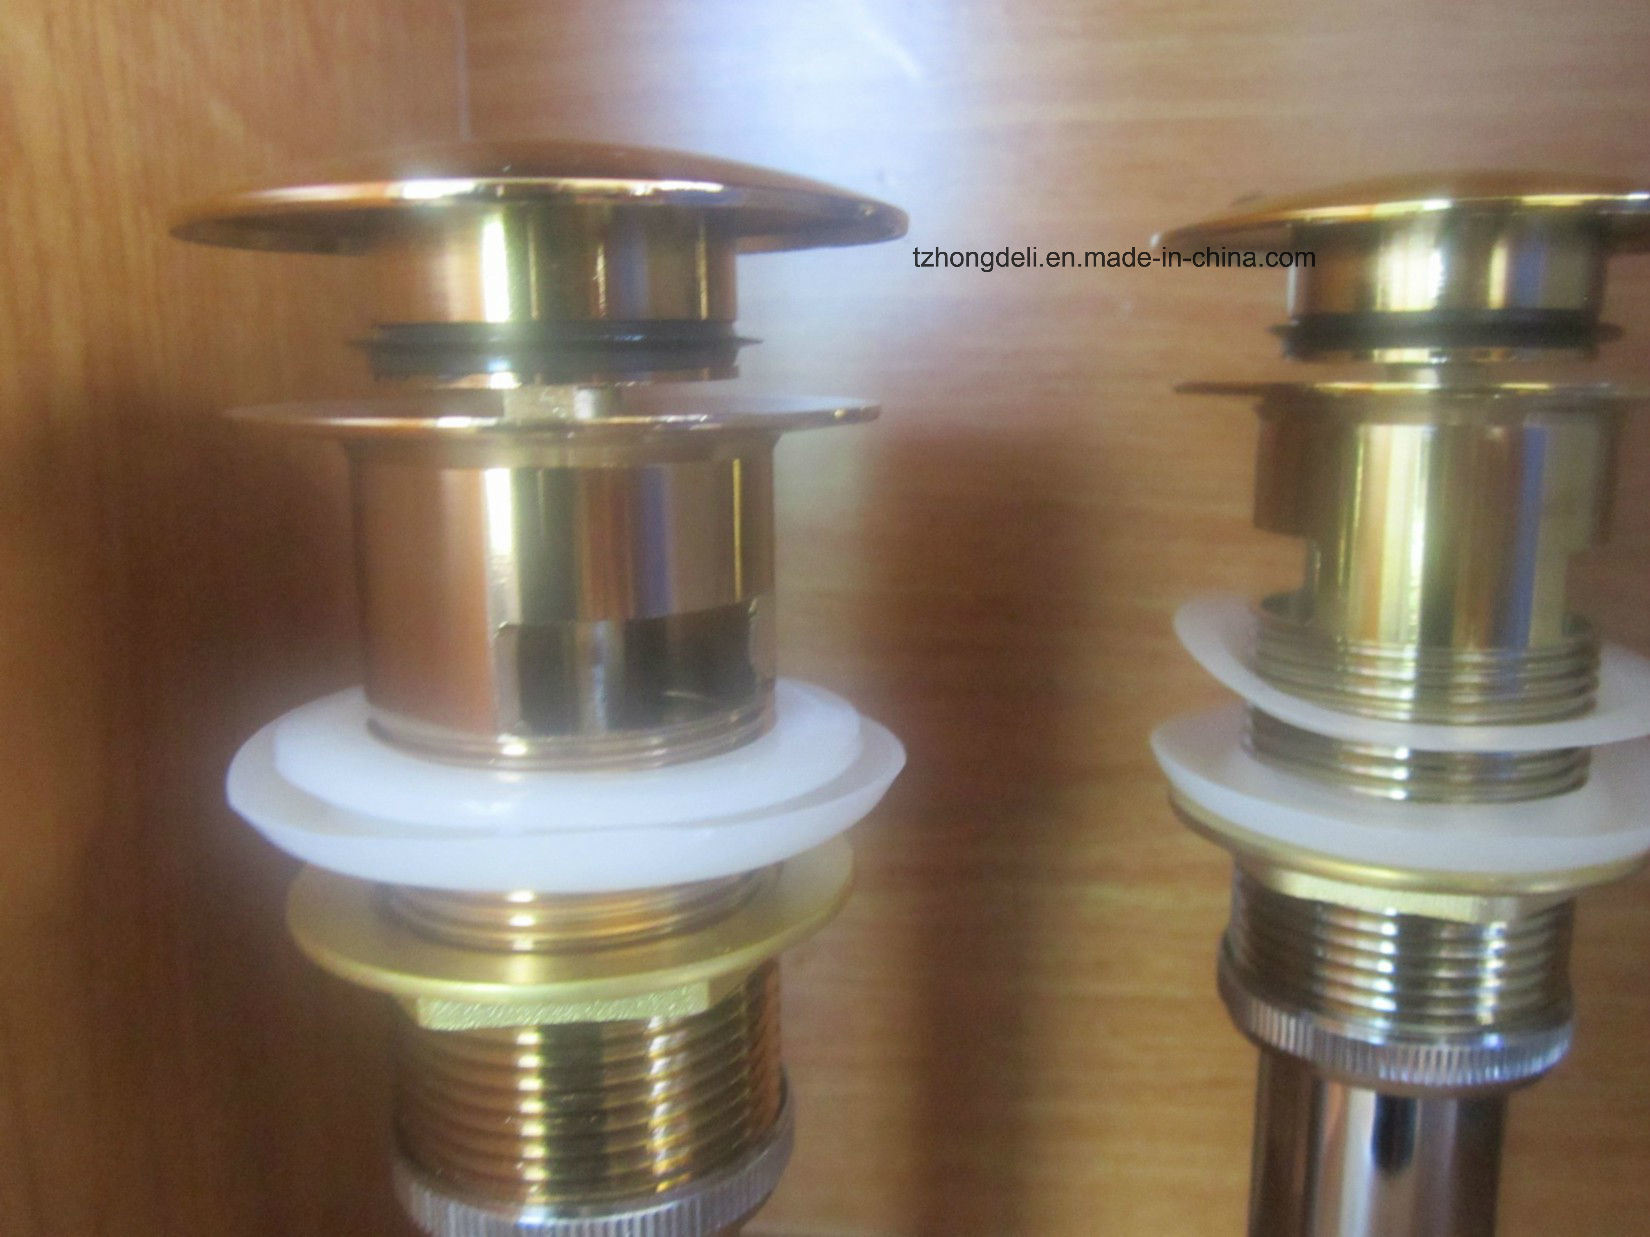 Bathroom Accessory Brass Free Way for Wash Basin Drainer